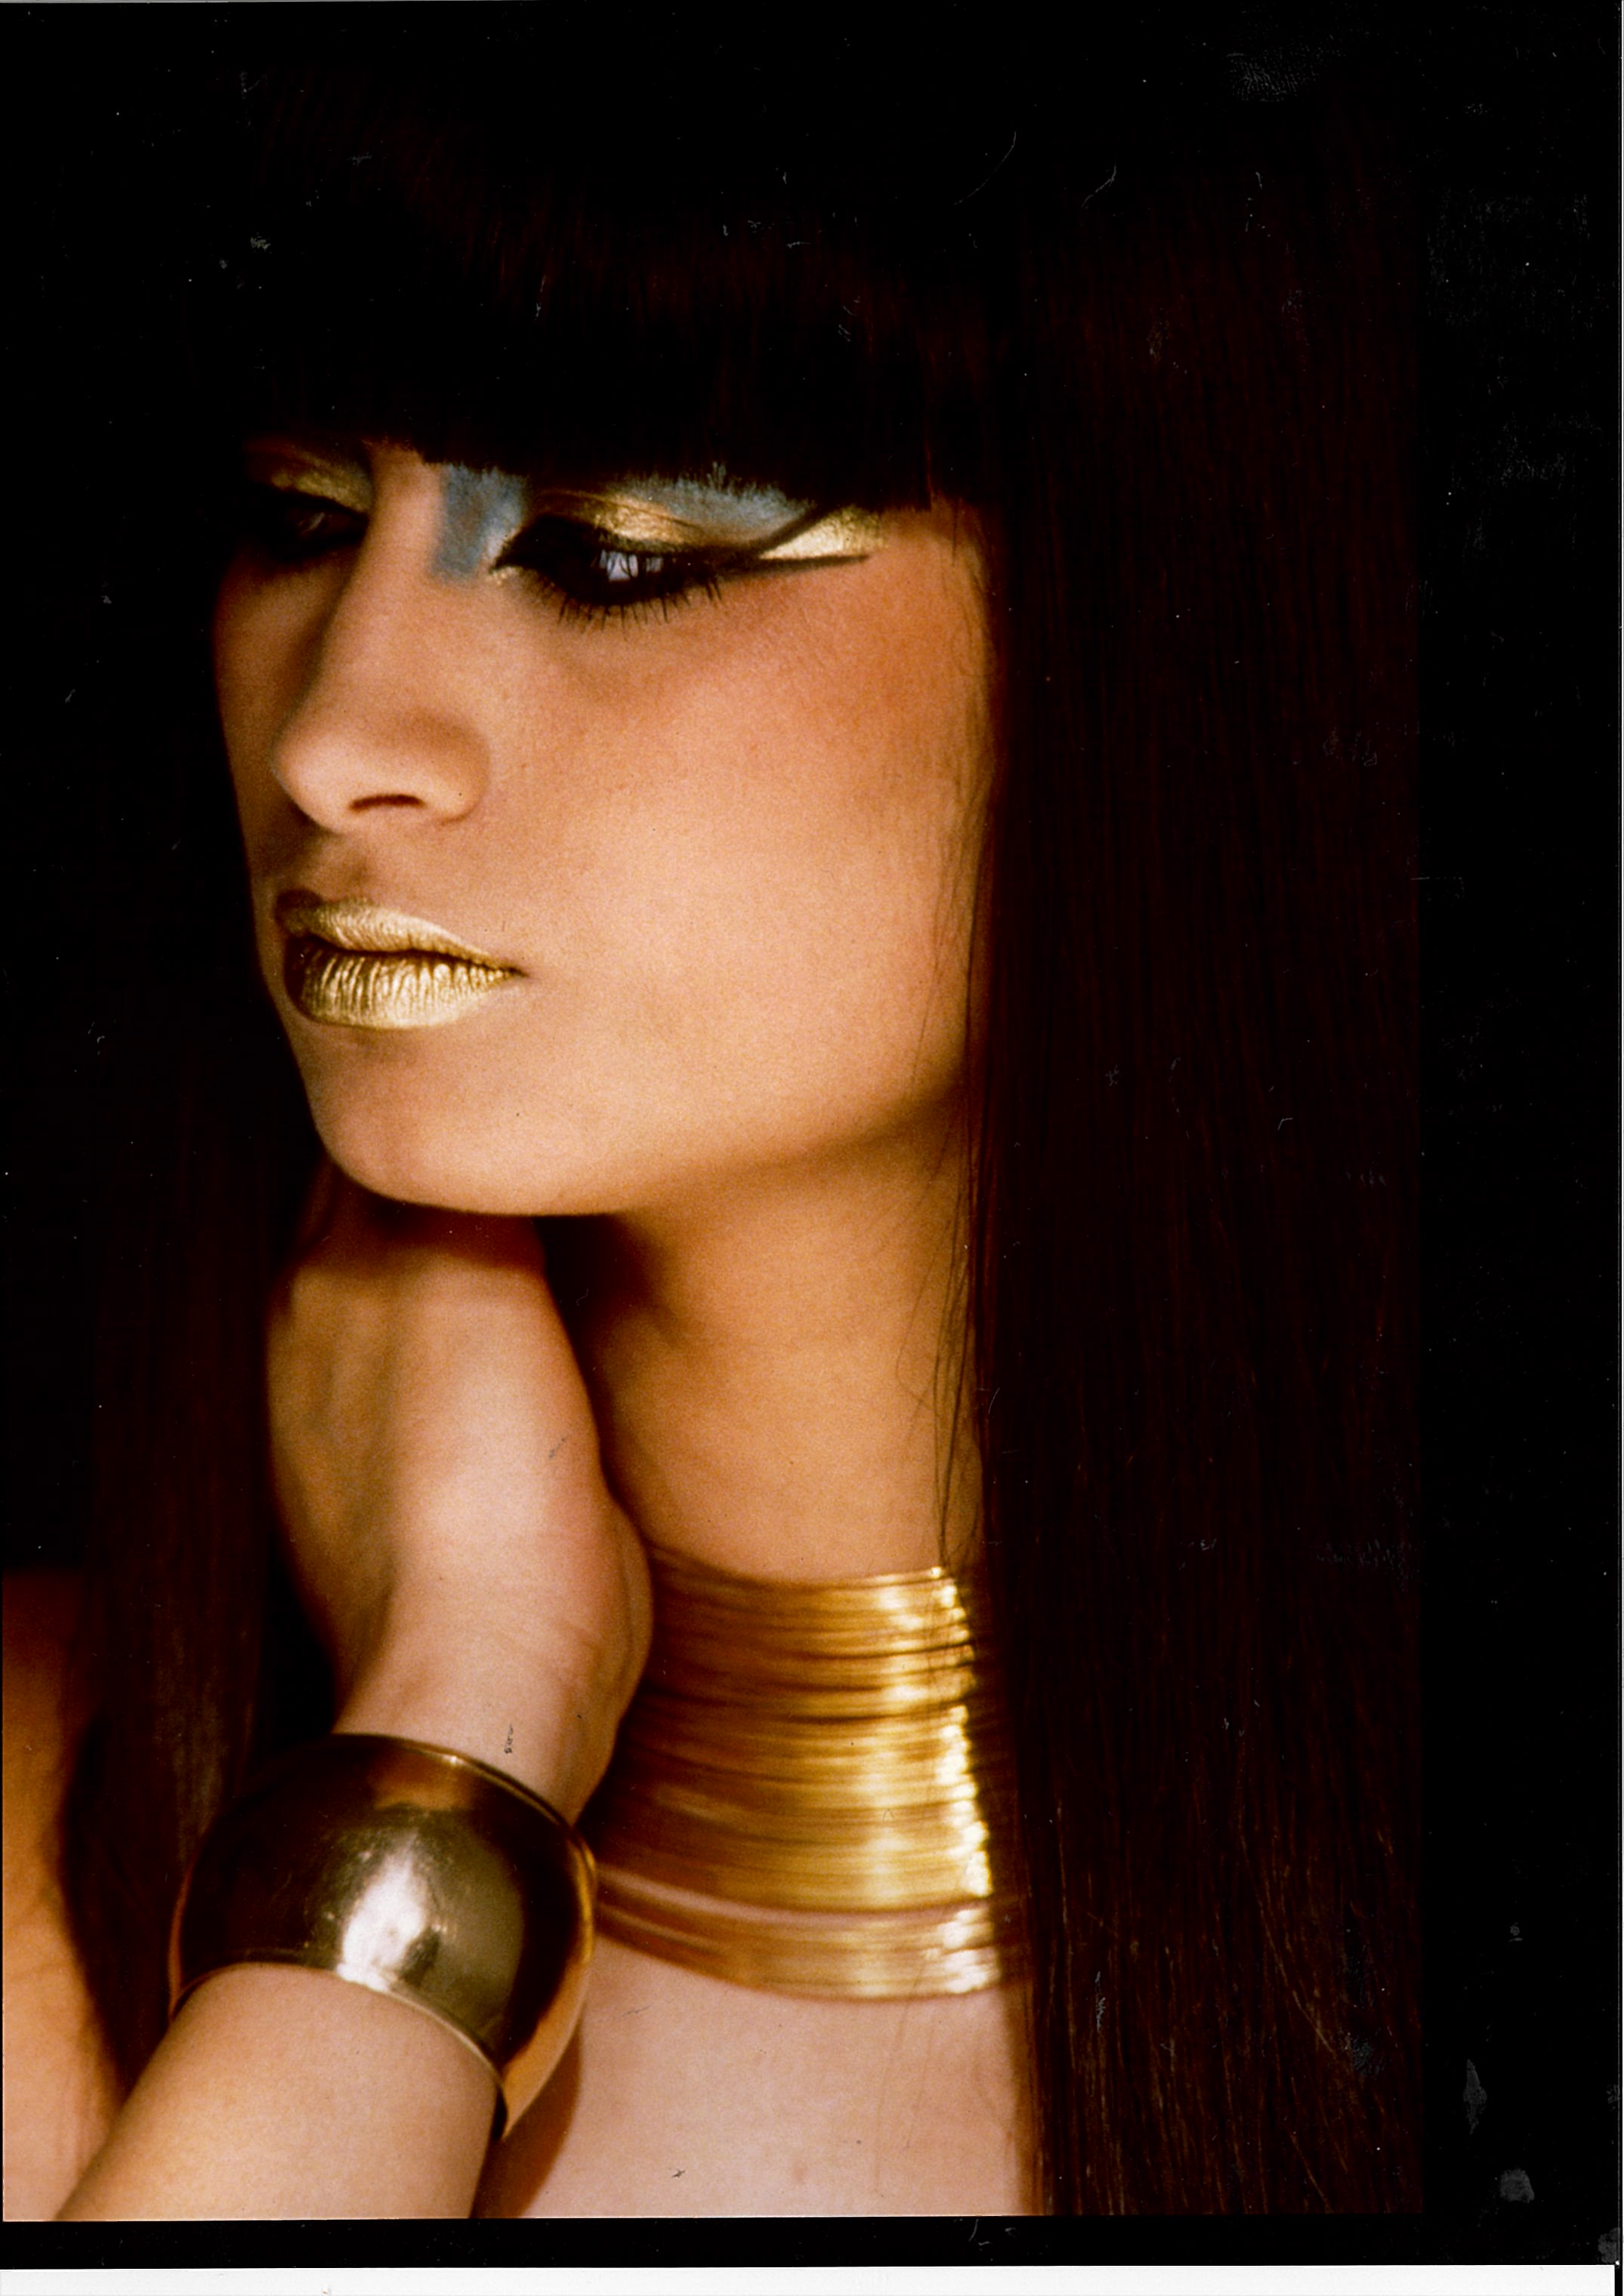 66. London Modelling - FD - Cleopatra